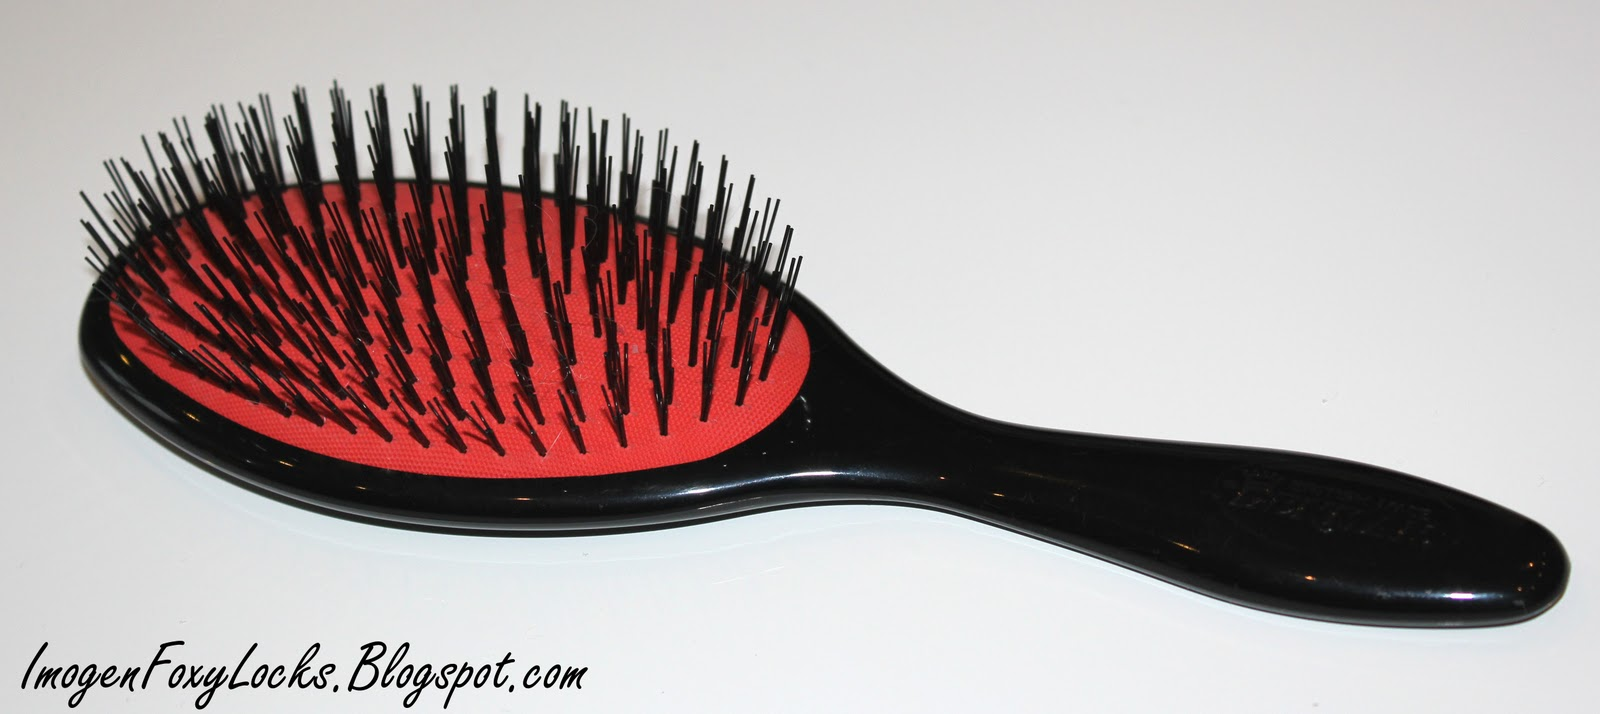 Imogen Foxy Locks The Best Hair Brushes Tested